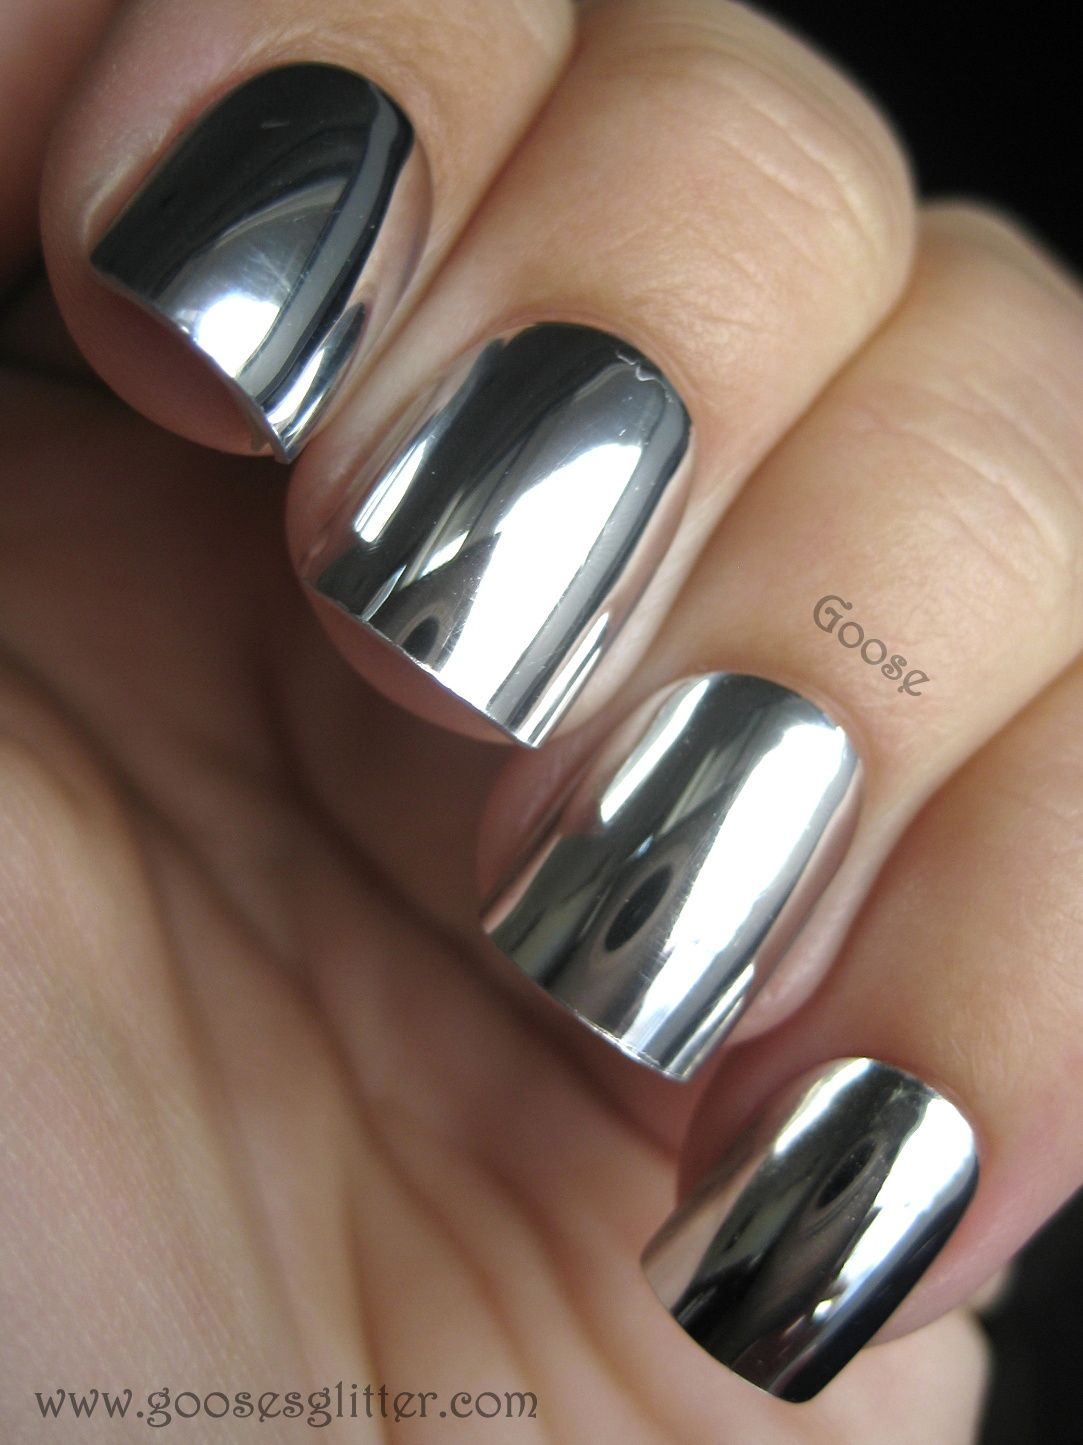 Goose\'s Glitter: Mirror Nails: Day 4 Review | nails | Pinterest ...